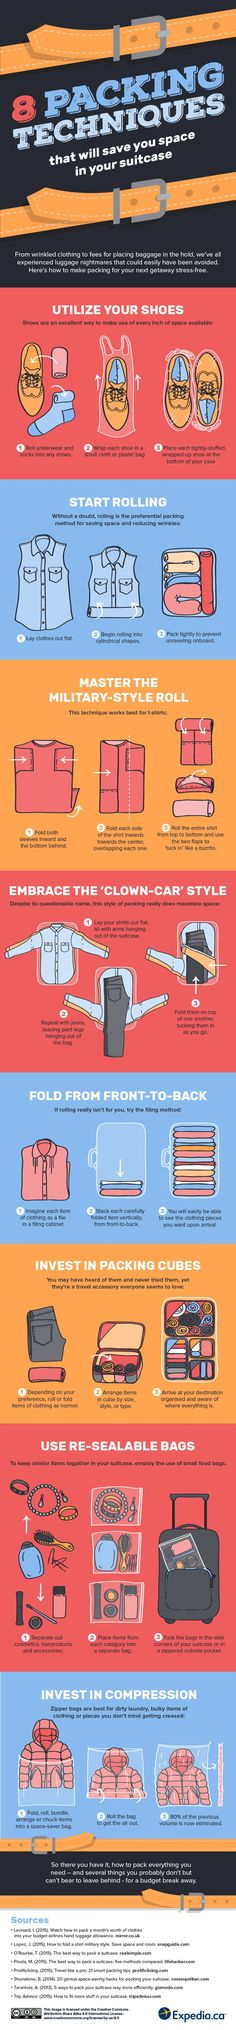 Infographic: 8 packing techniques that will save you space in your suitcase…